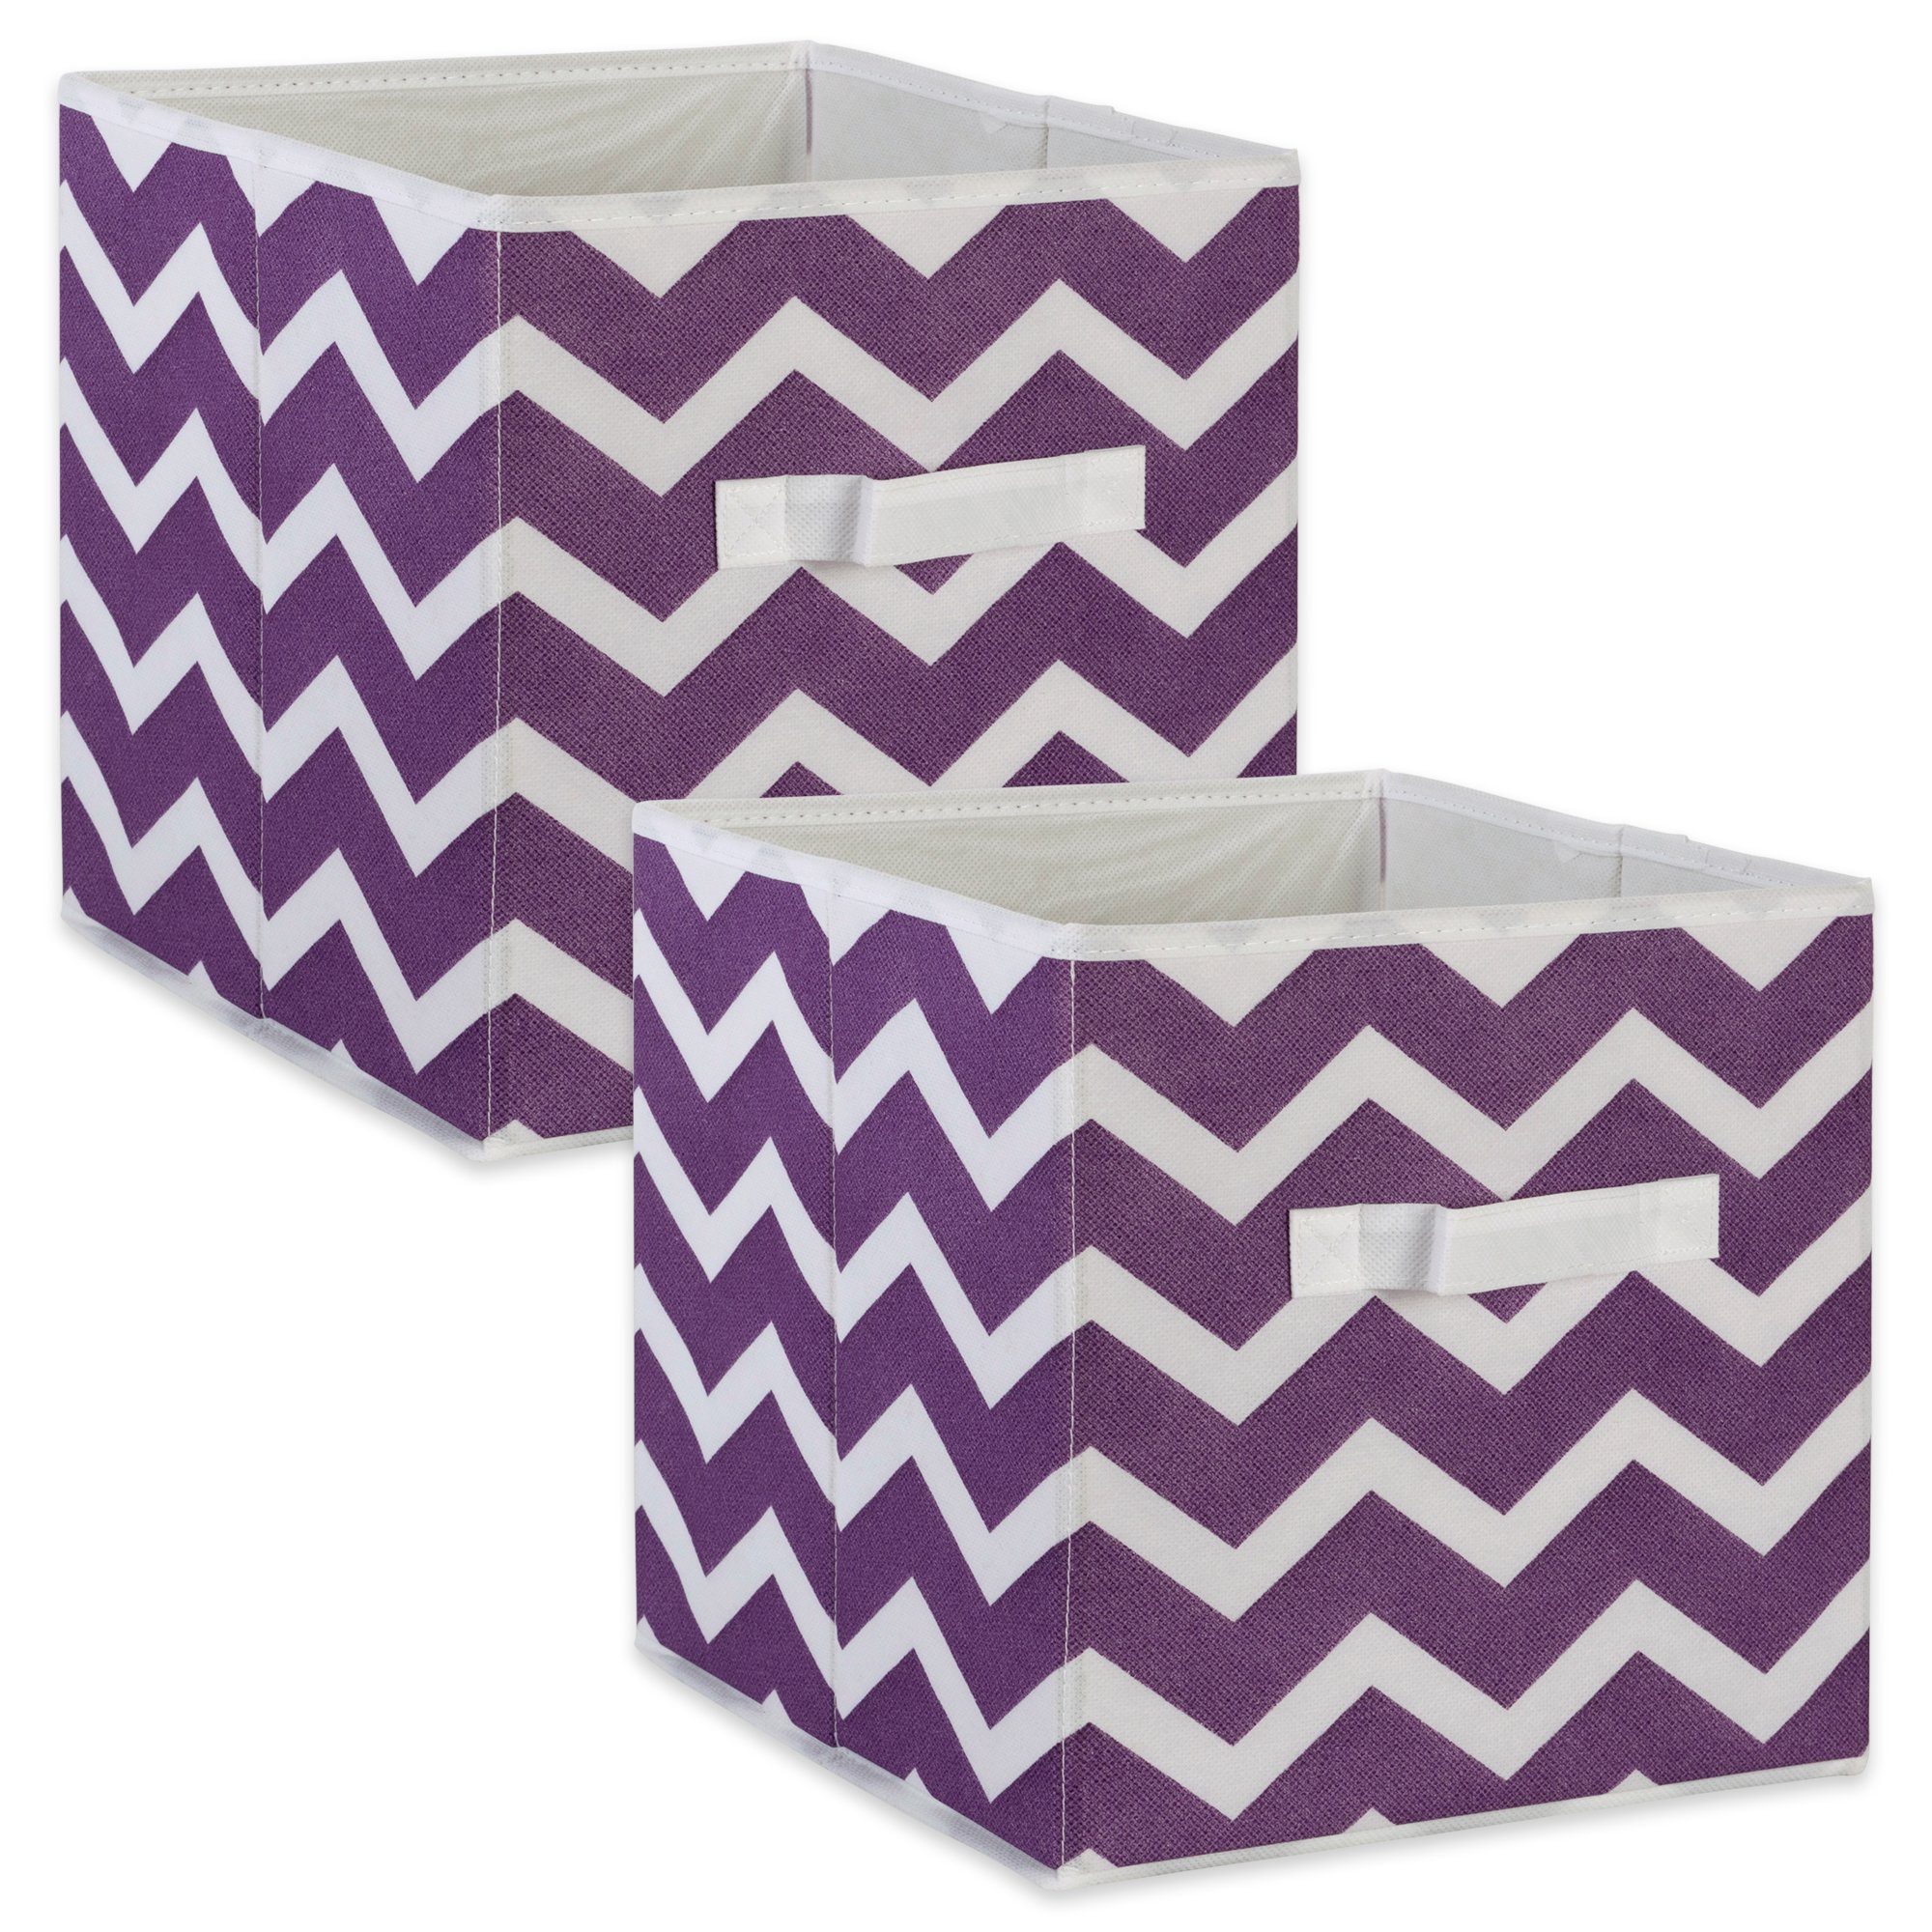 DII Fabric Storage Bins for Nursery, Offices, Home Organization, Containers are Made to Fit Standard Cube Organizers (11x11x11) Chevron Eggplant - Set of 2